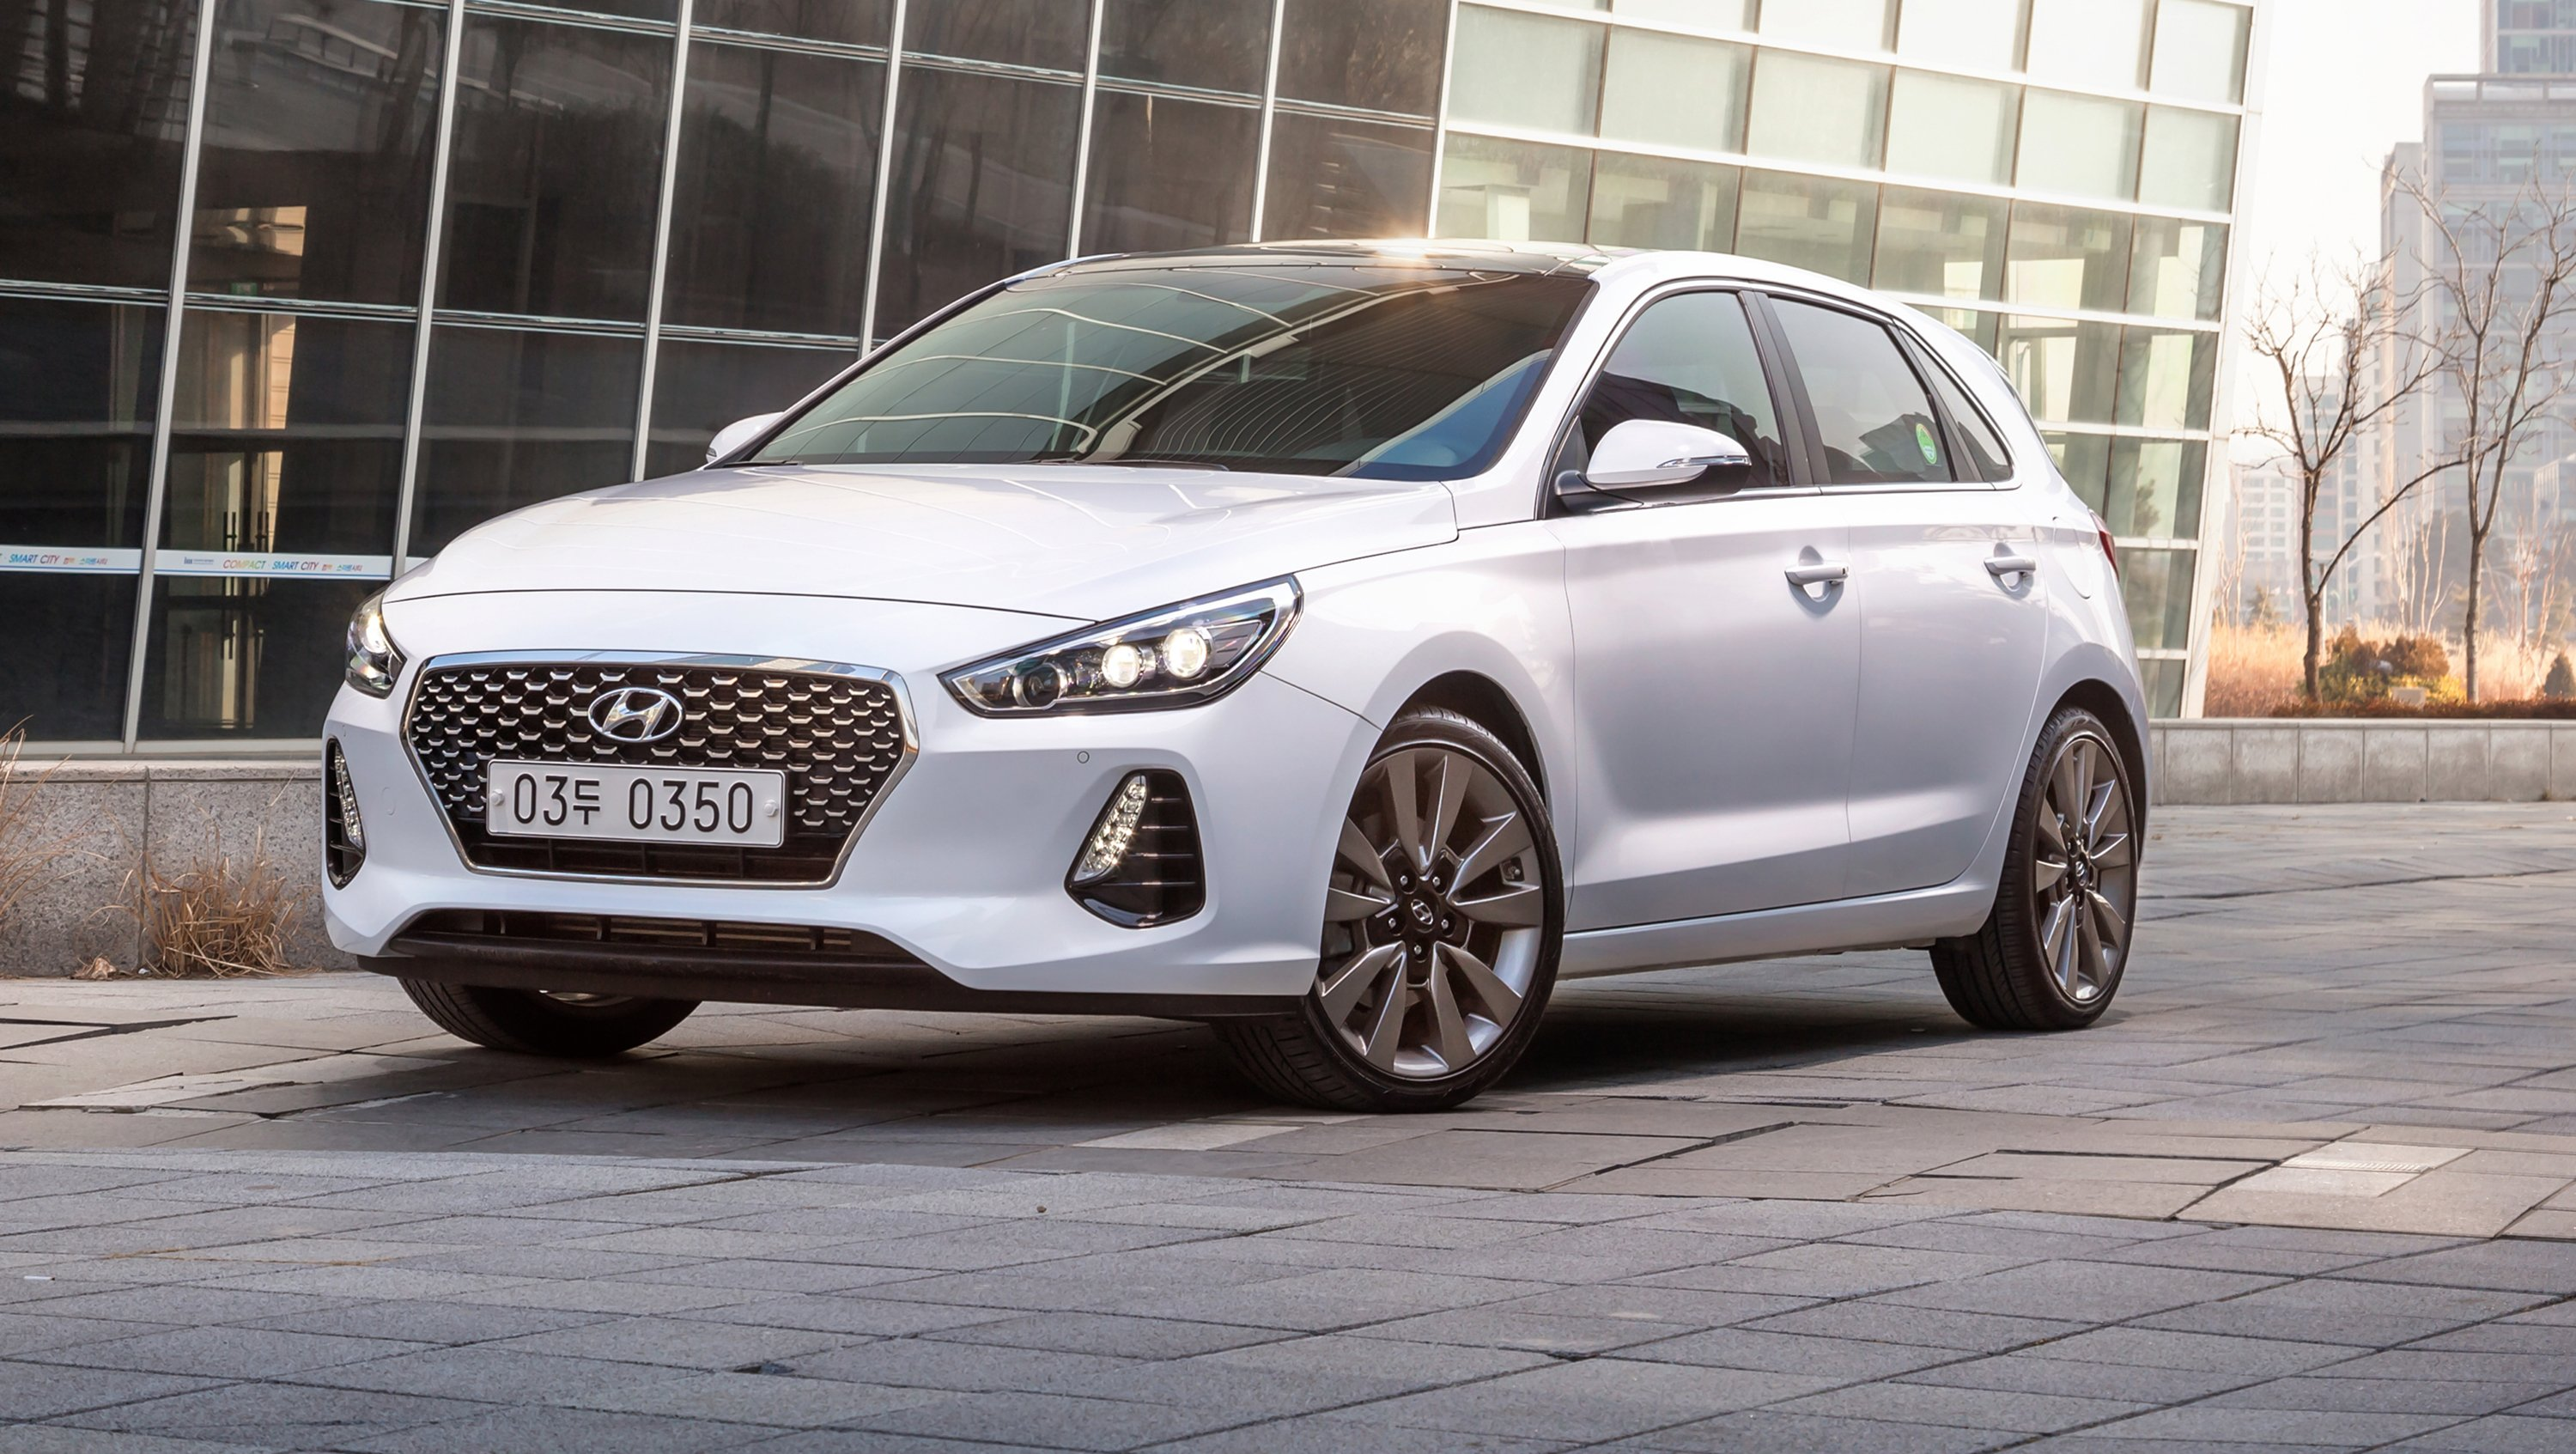 Hyundai I20 Reviews >> 2017 Hyundai i30 review | CarAdvice